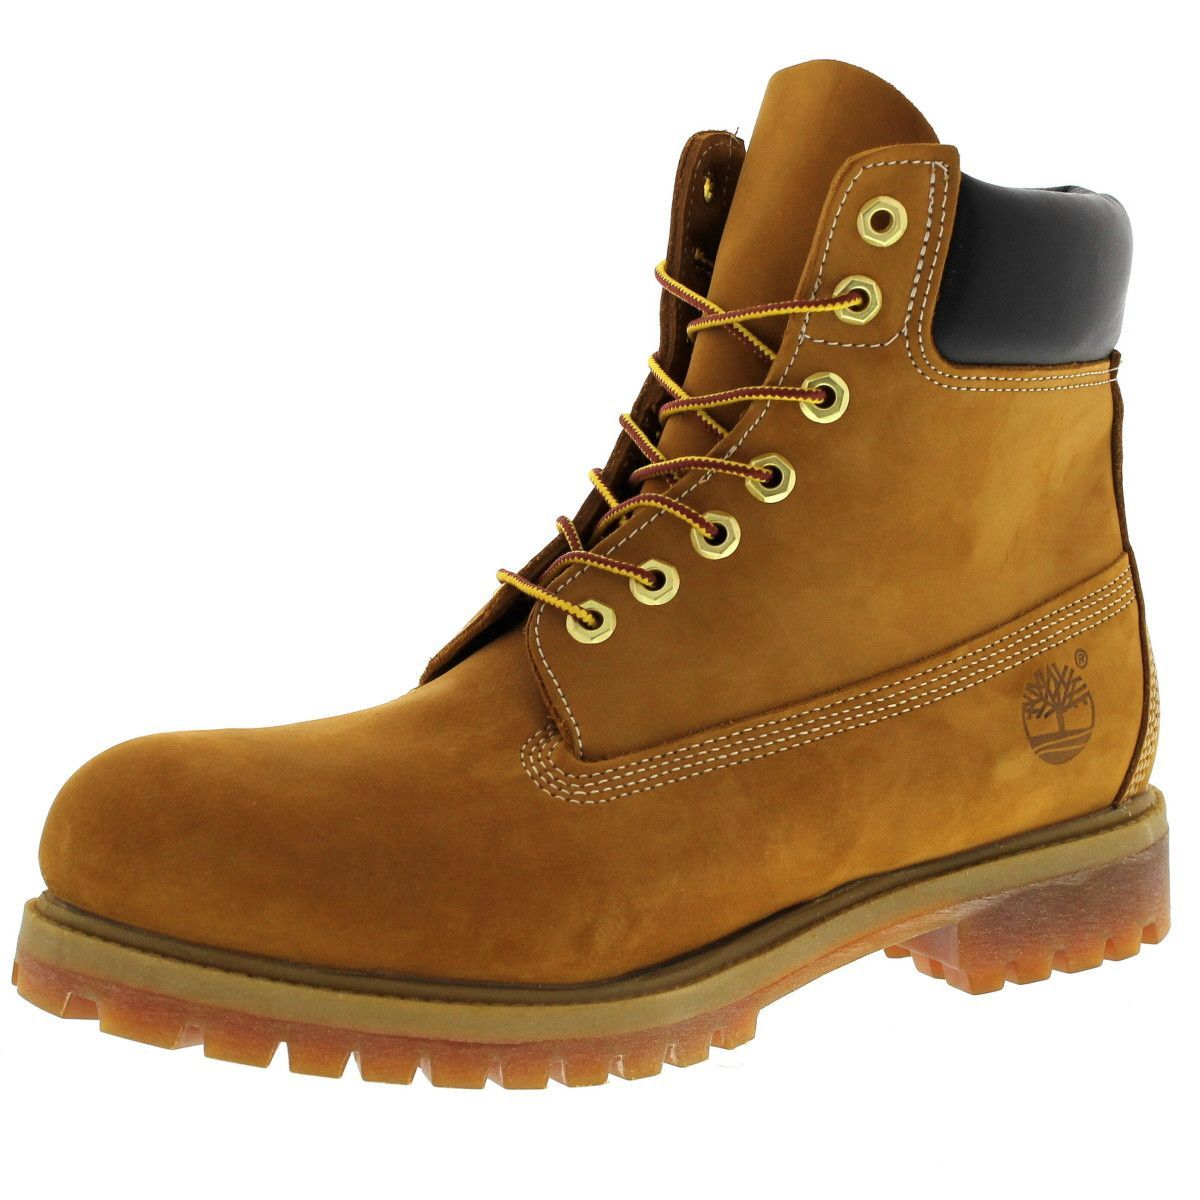 54618032e7509 Timberland - Men s Icon 6 Inch Premium Waterproof Boot - Wheat Nubuck